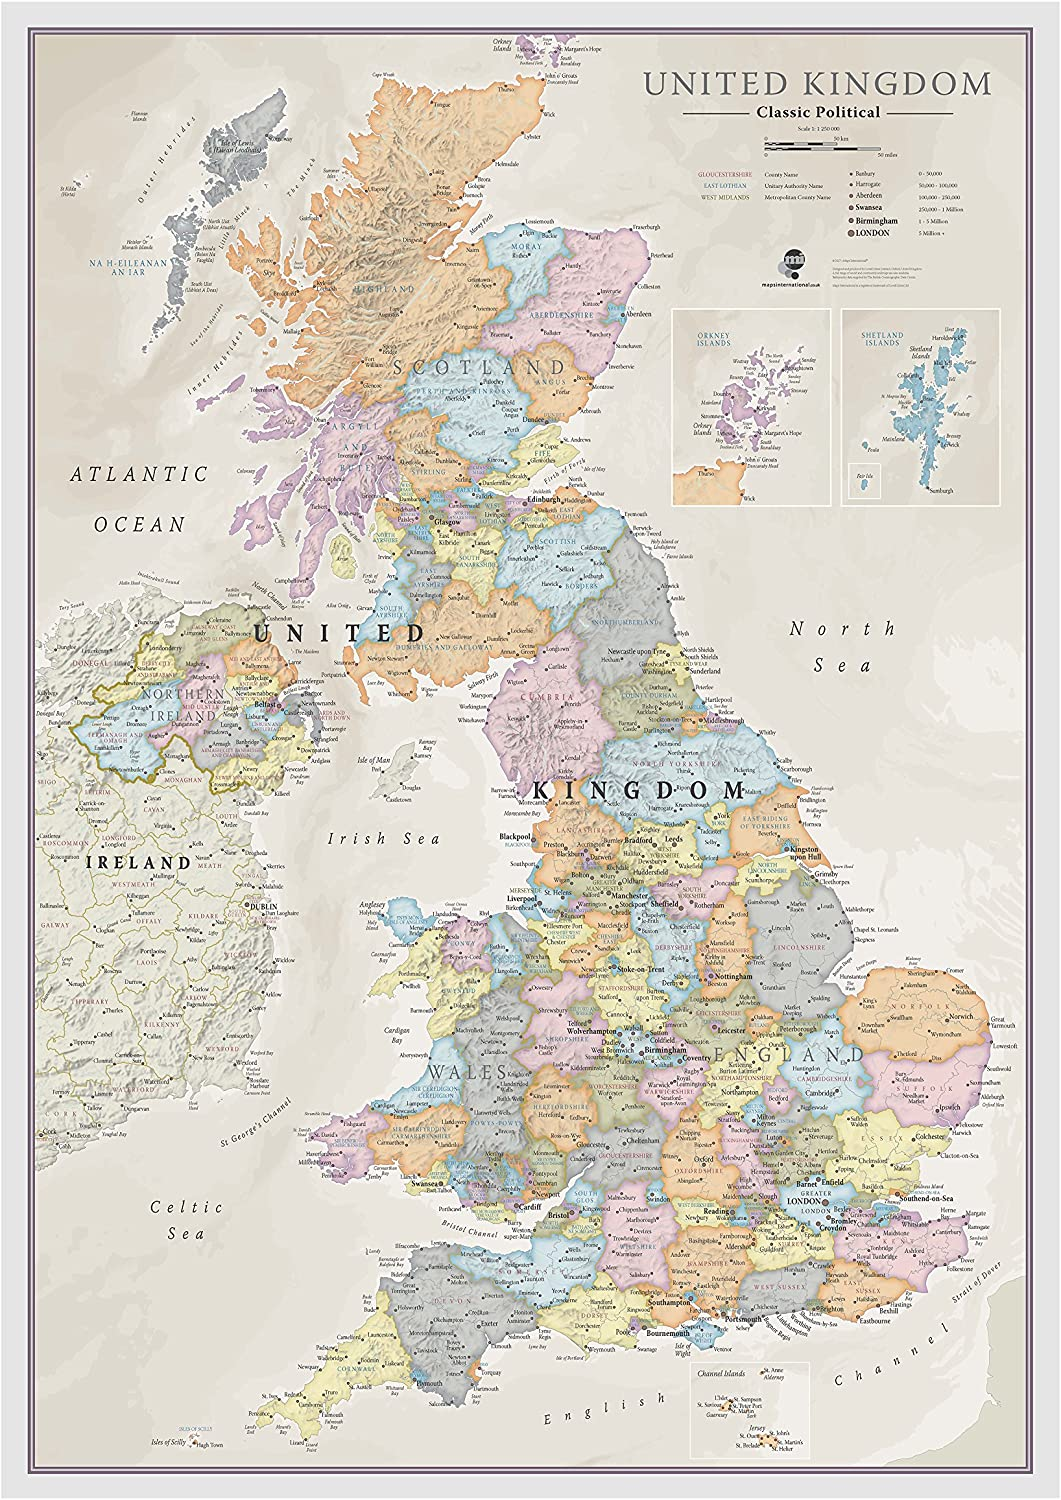 UK MAP DETAILED TOWNS CITIES WALL ART LARGE A1 POSTER 33 X 23 INCH